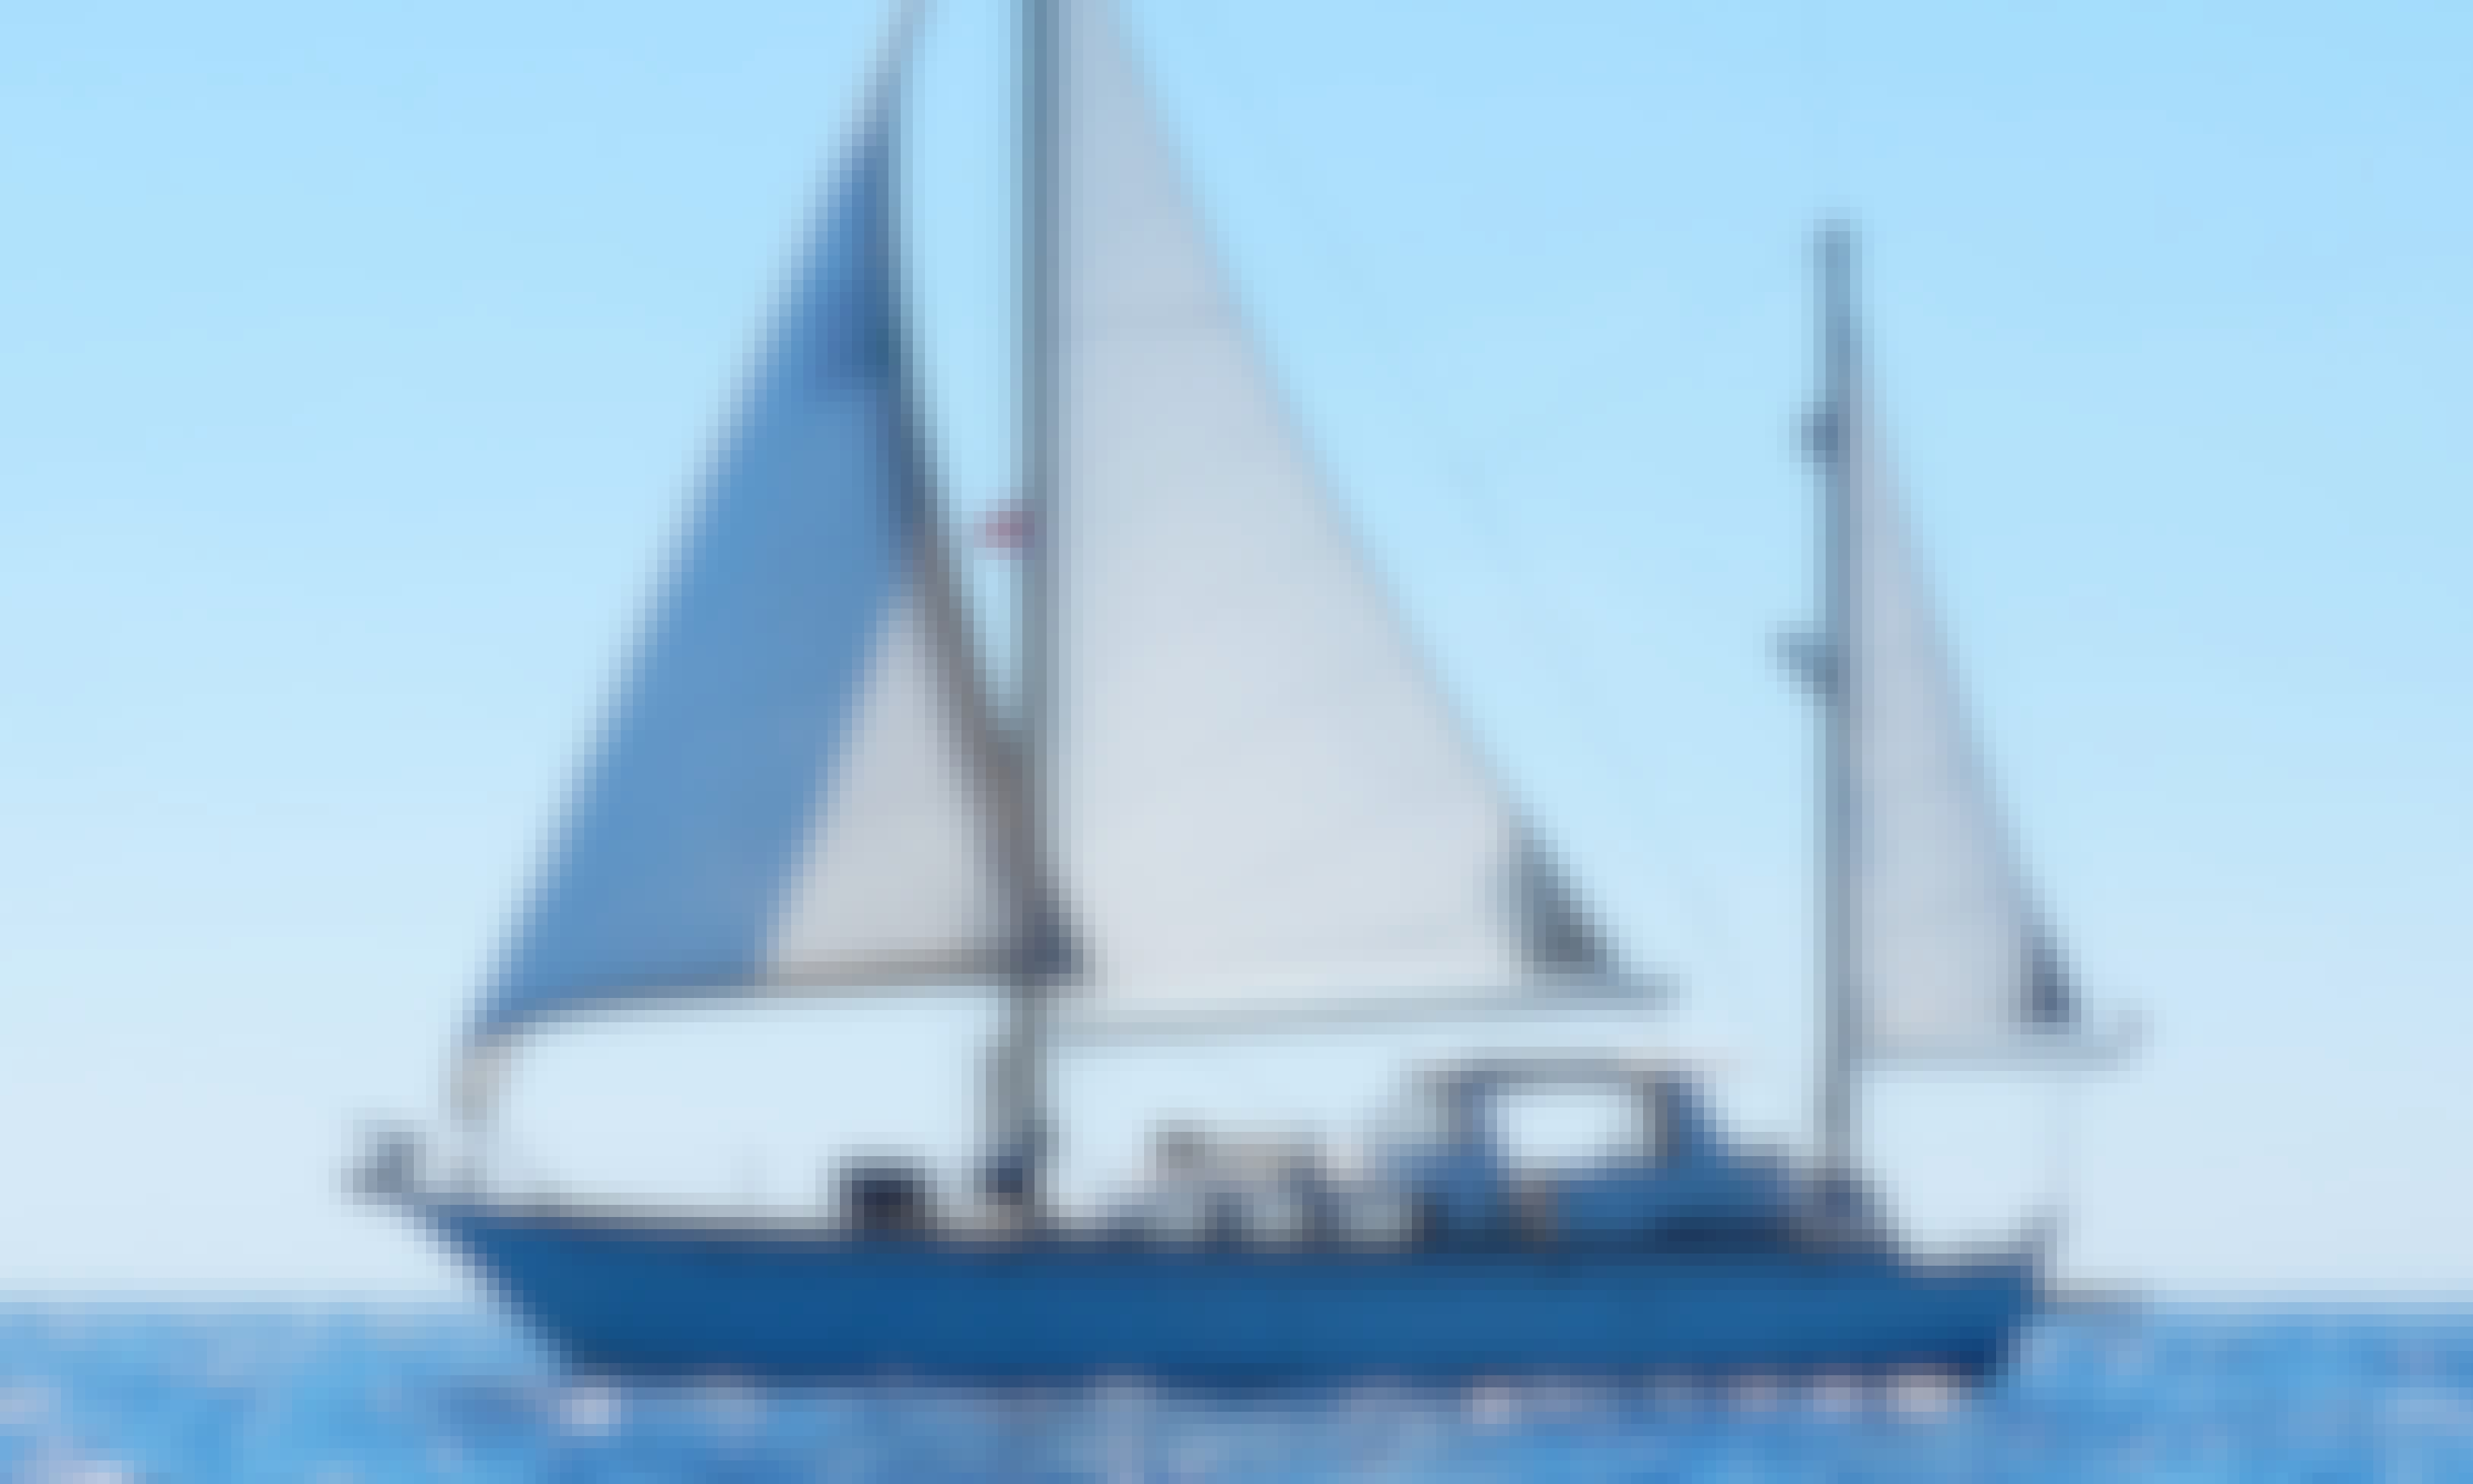 Sail cruising among the Dodecanese islands in Greece